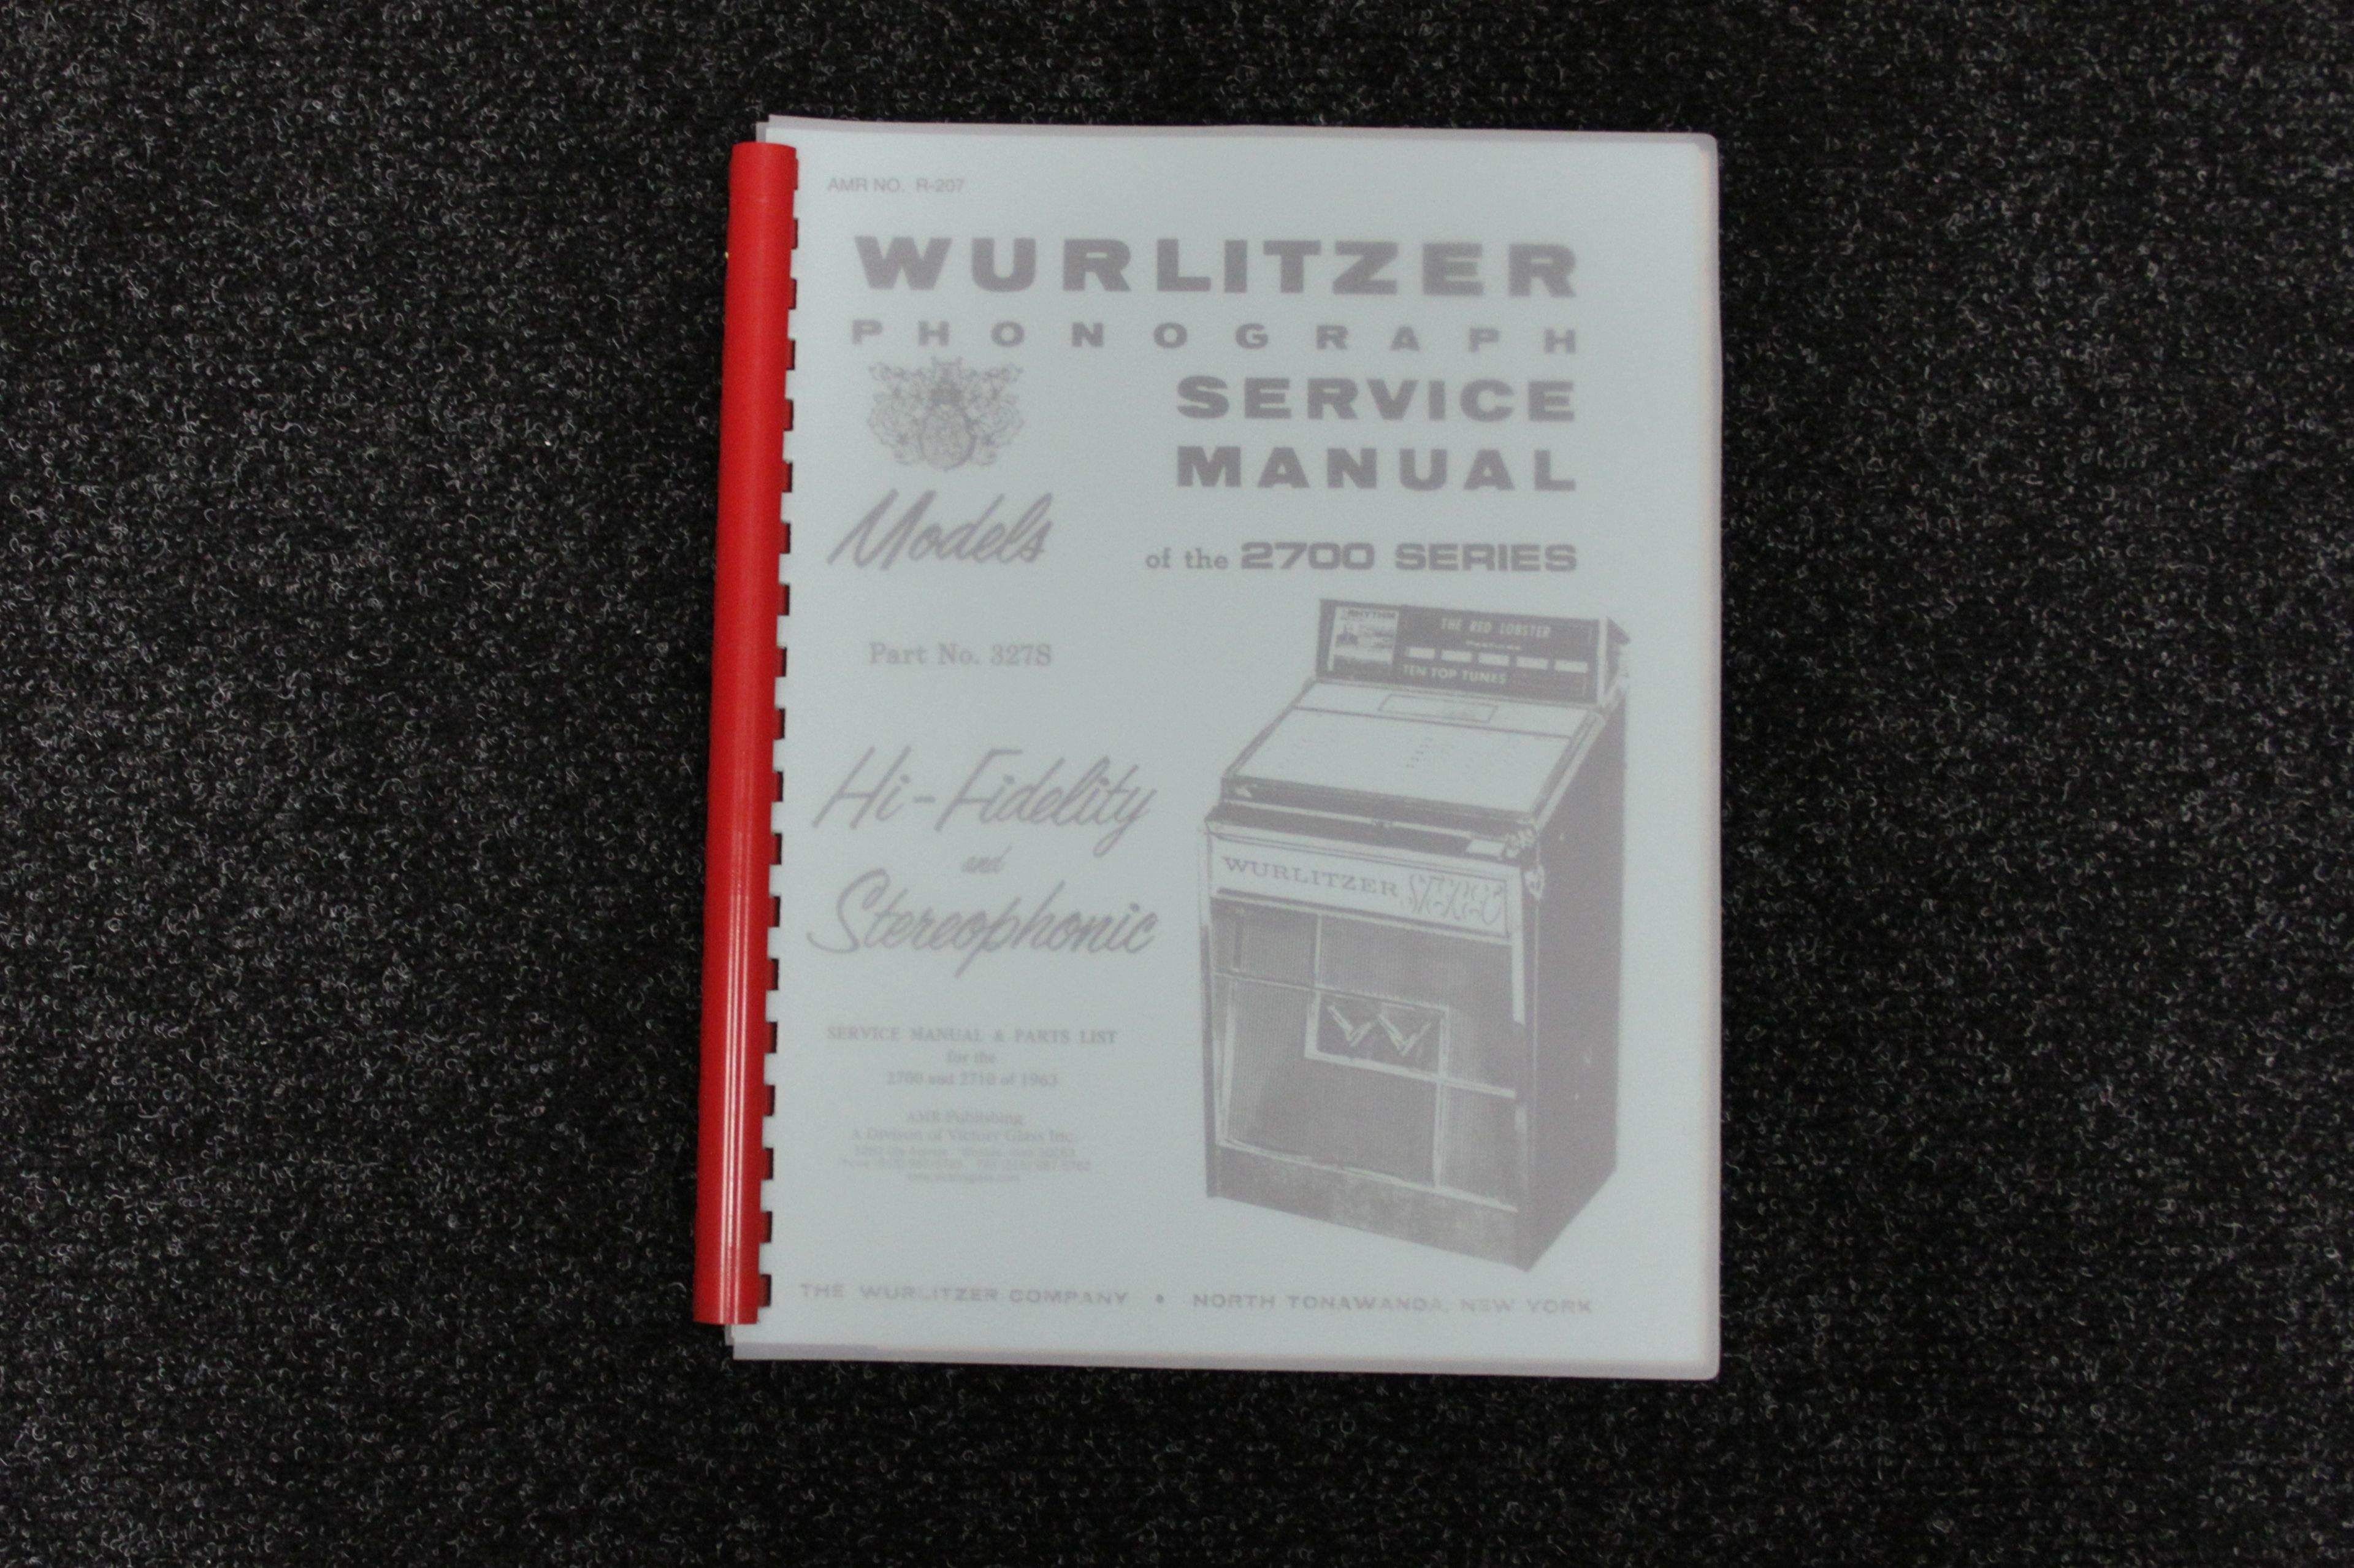 Wurlitzer Service Manual 2700 series